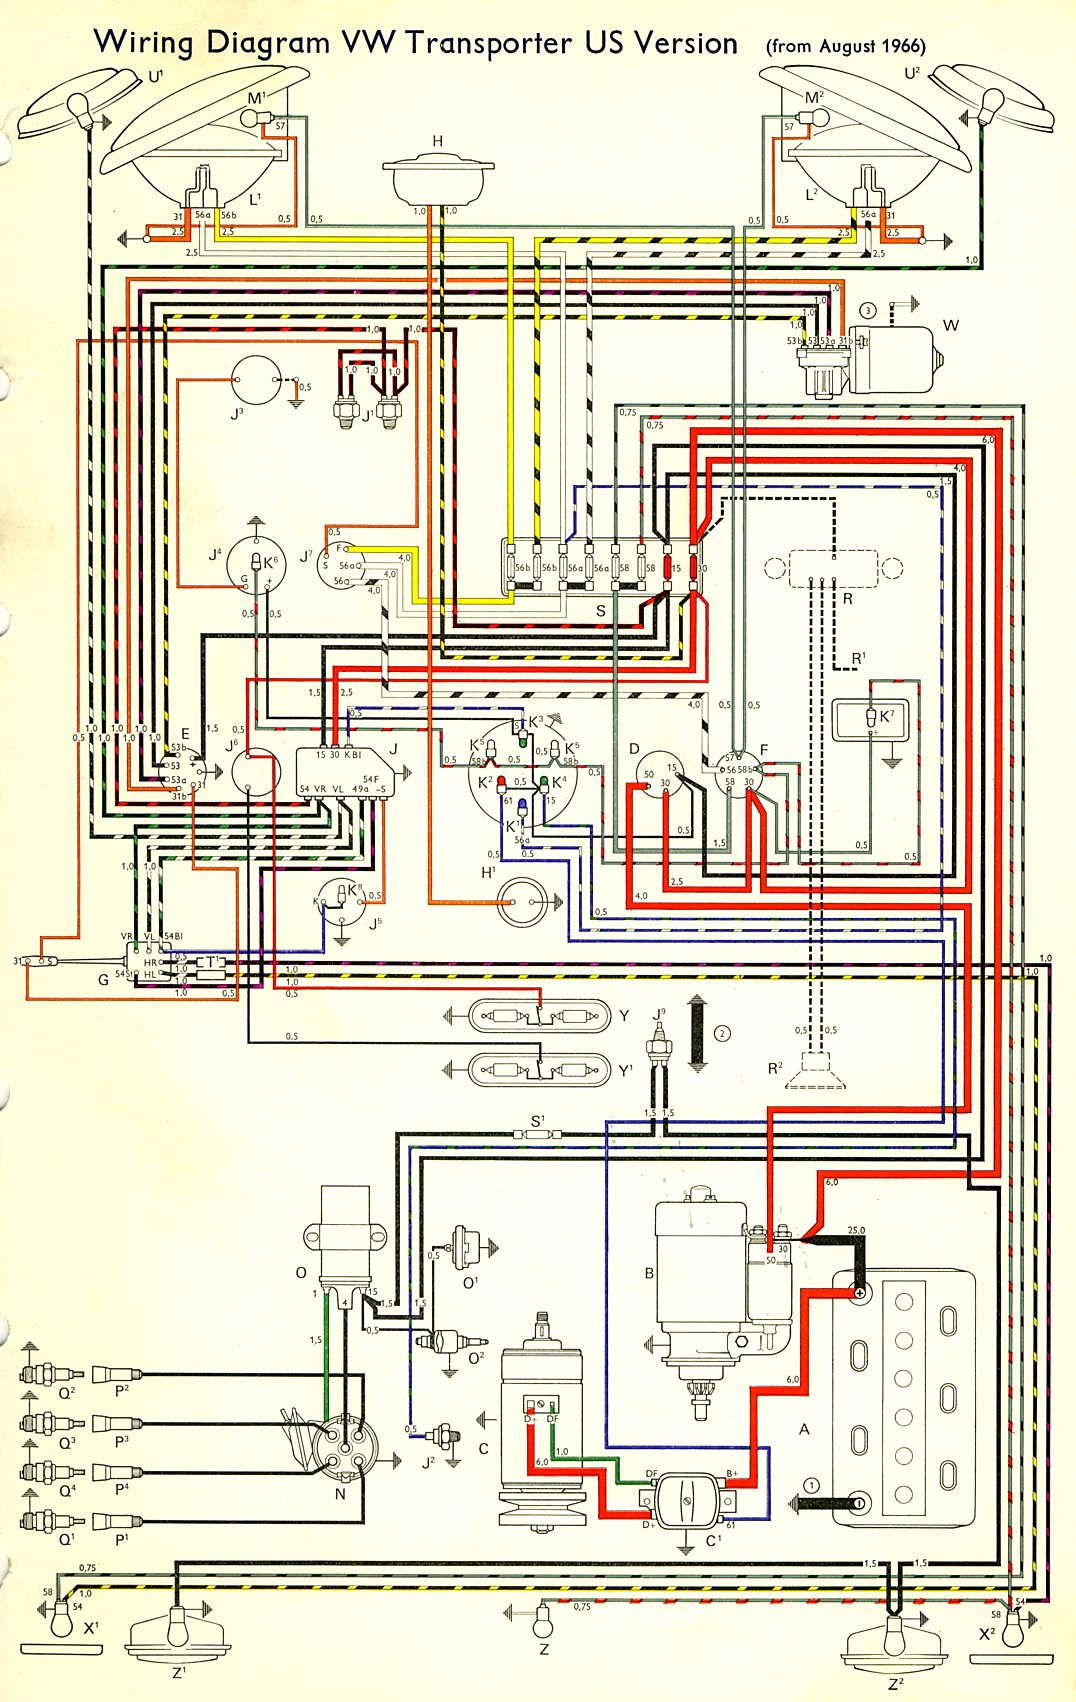 thesamba com type 2 wiring diagrams rh thesamba com Simple Wiring Diagrams Wiring Diagram Symbols